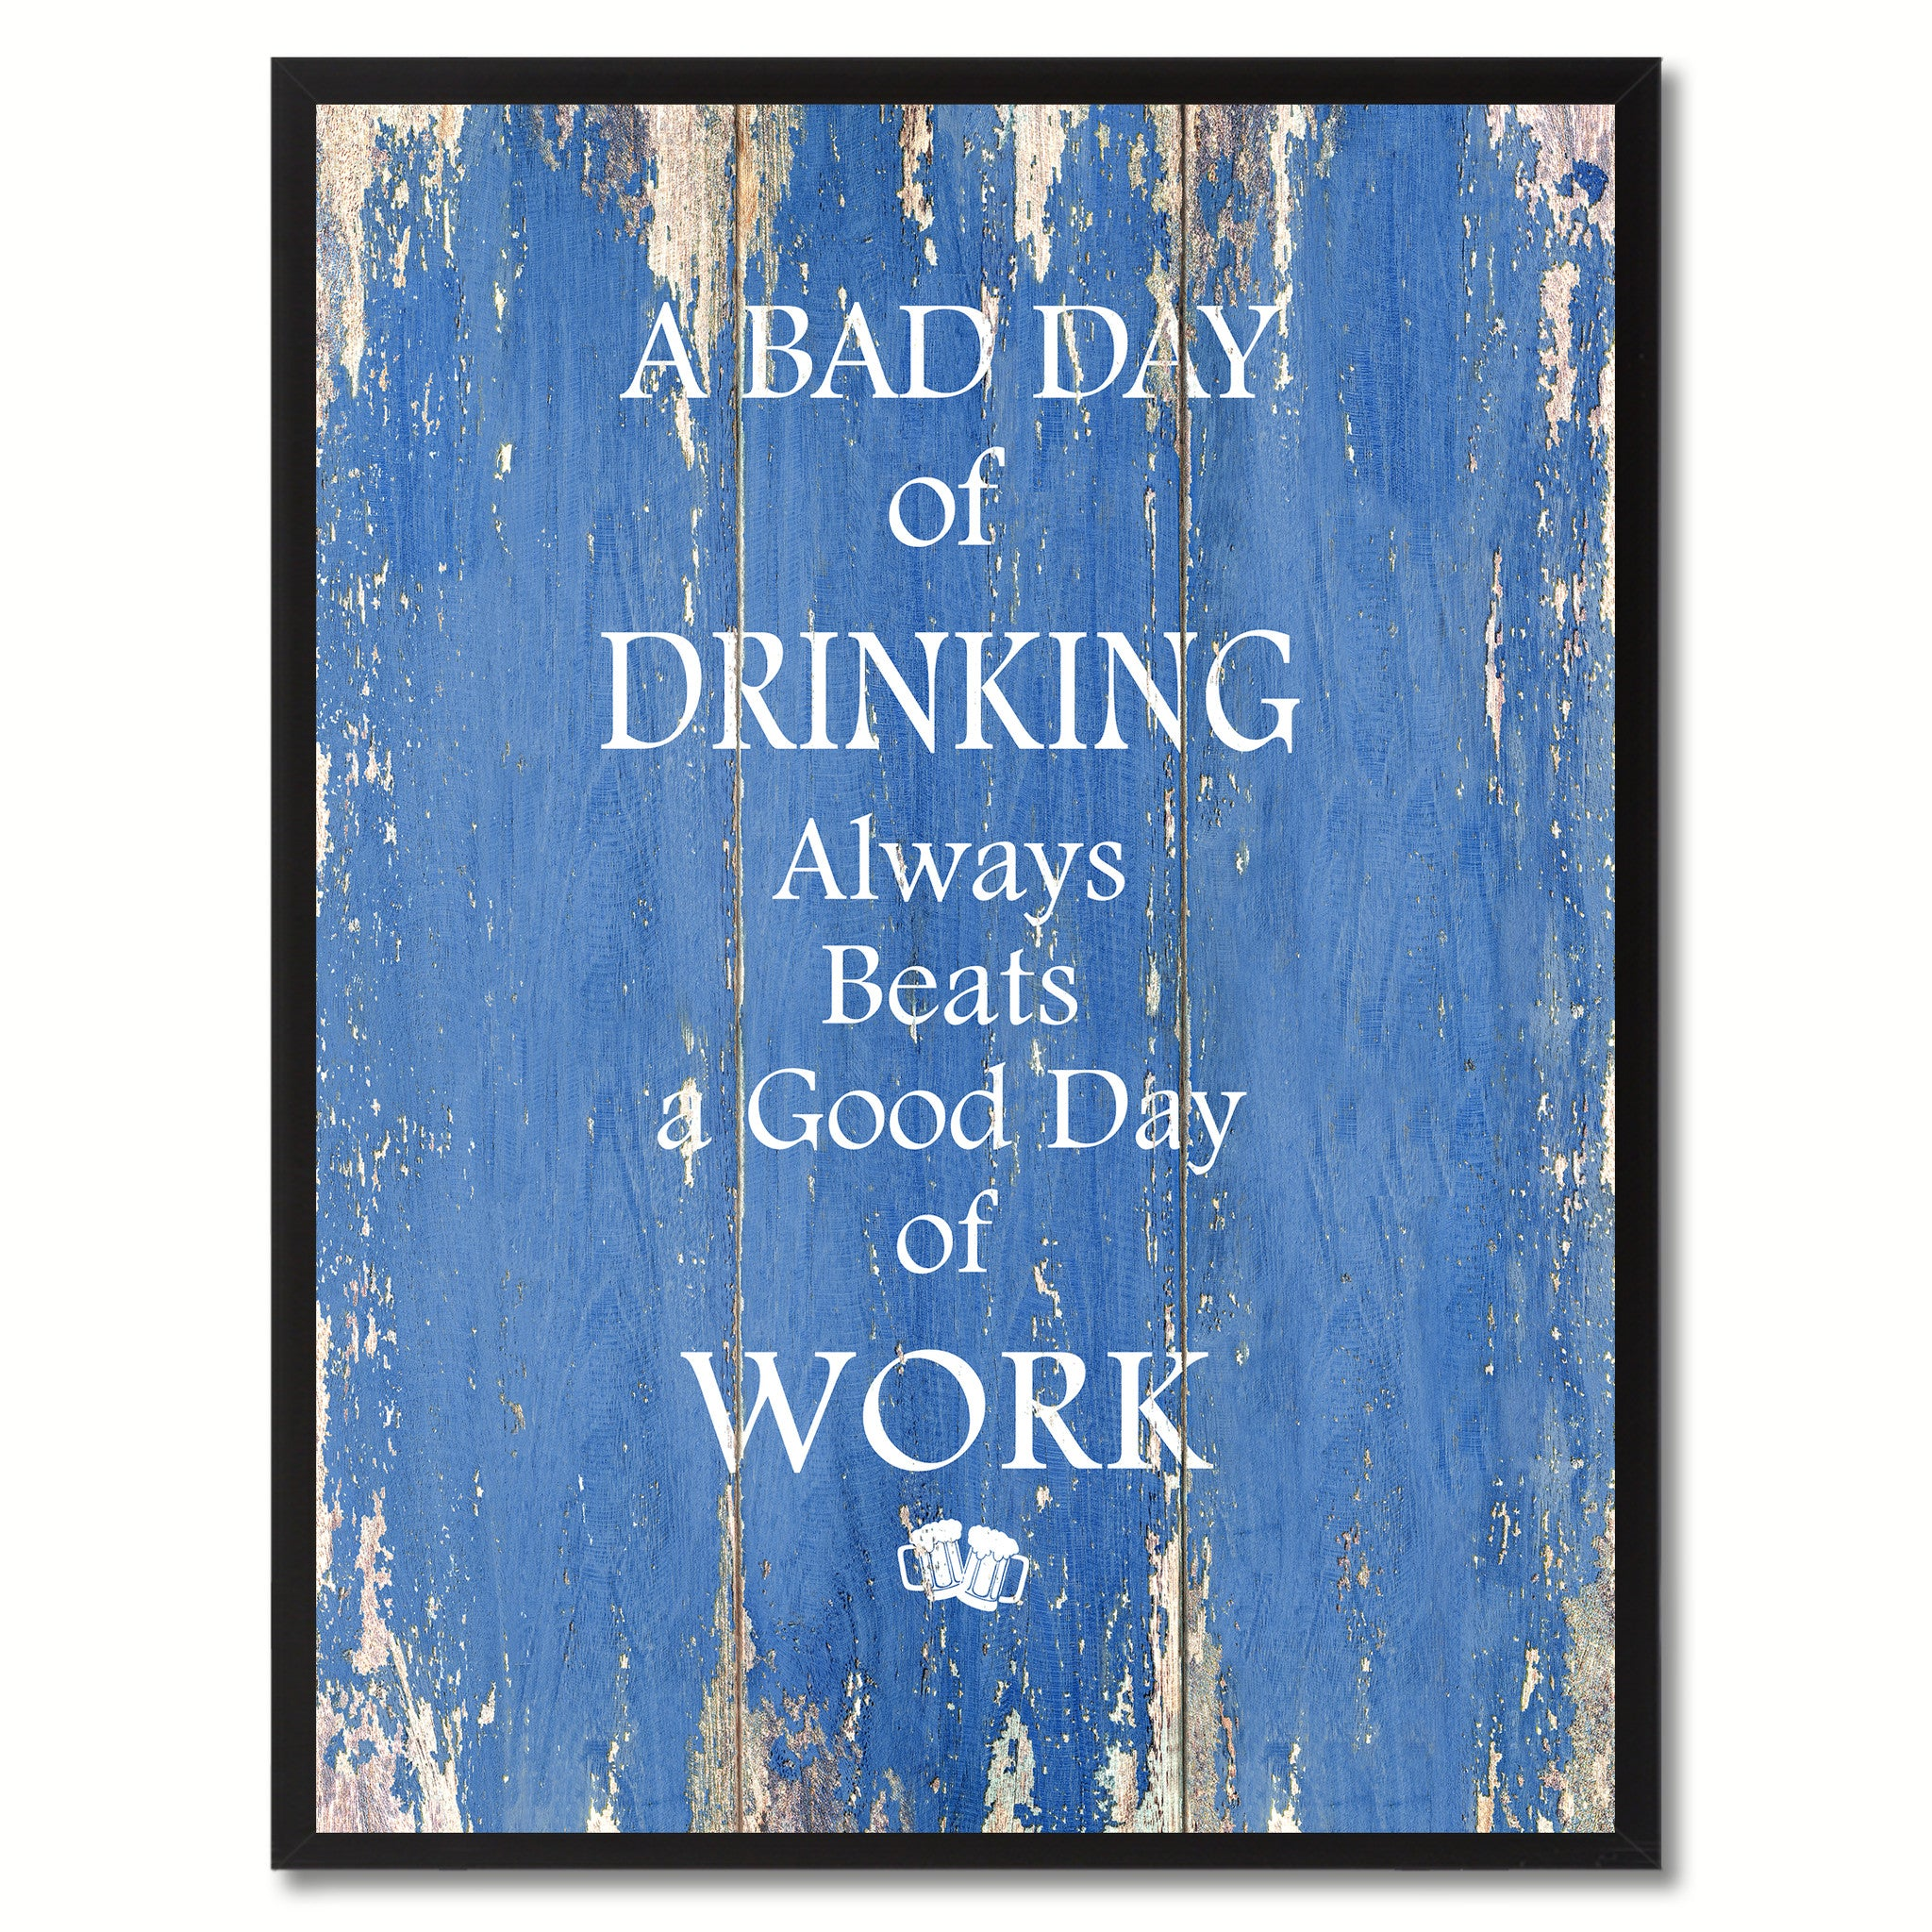 A Bad Day Of Drinking Always Beats A Good Day Of Work Quote Saying Gifts Ideas Home Decor Wall Art